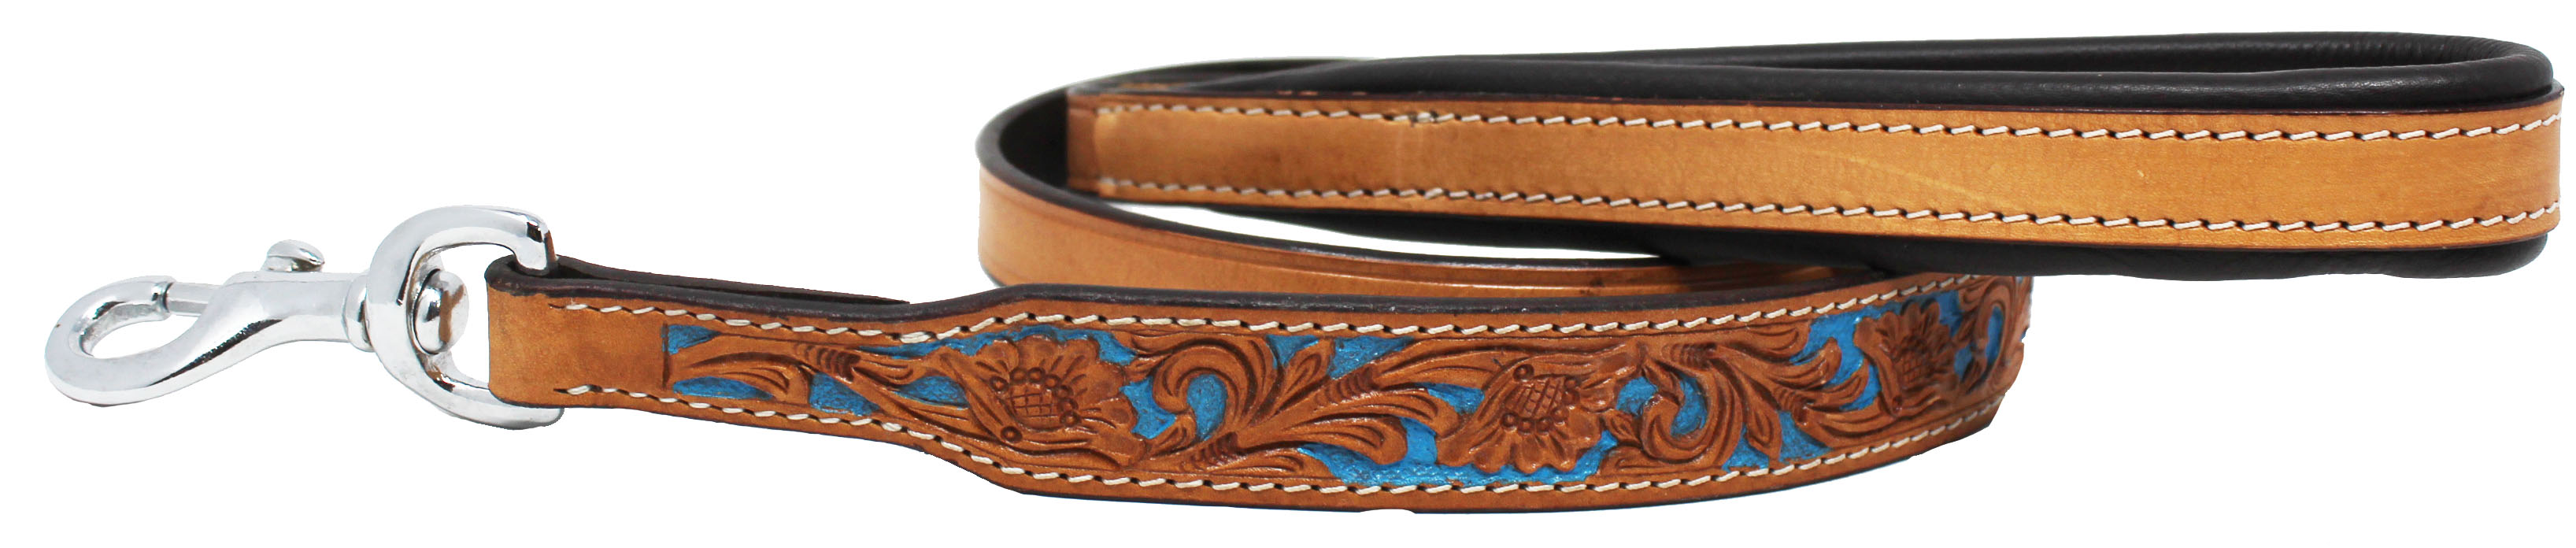 Floral-Tooled-Leather-Dog-Collar-Leash-Padded-Handle-600104